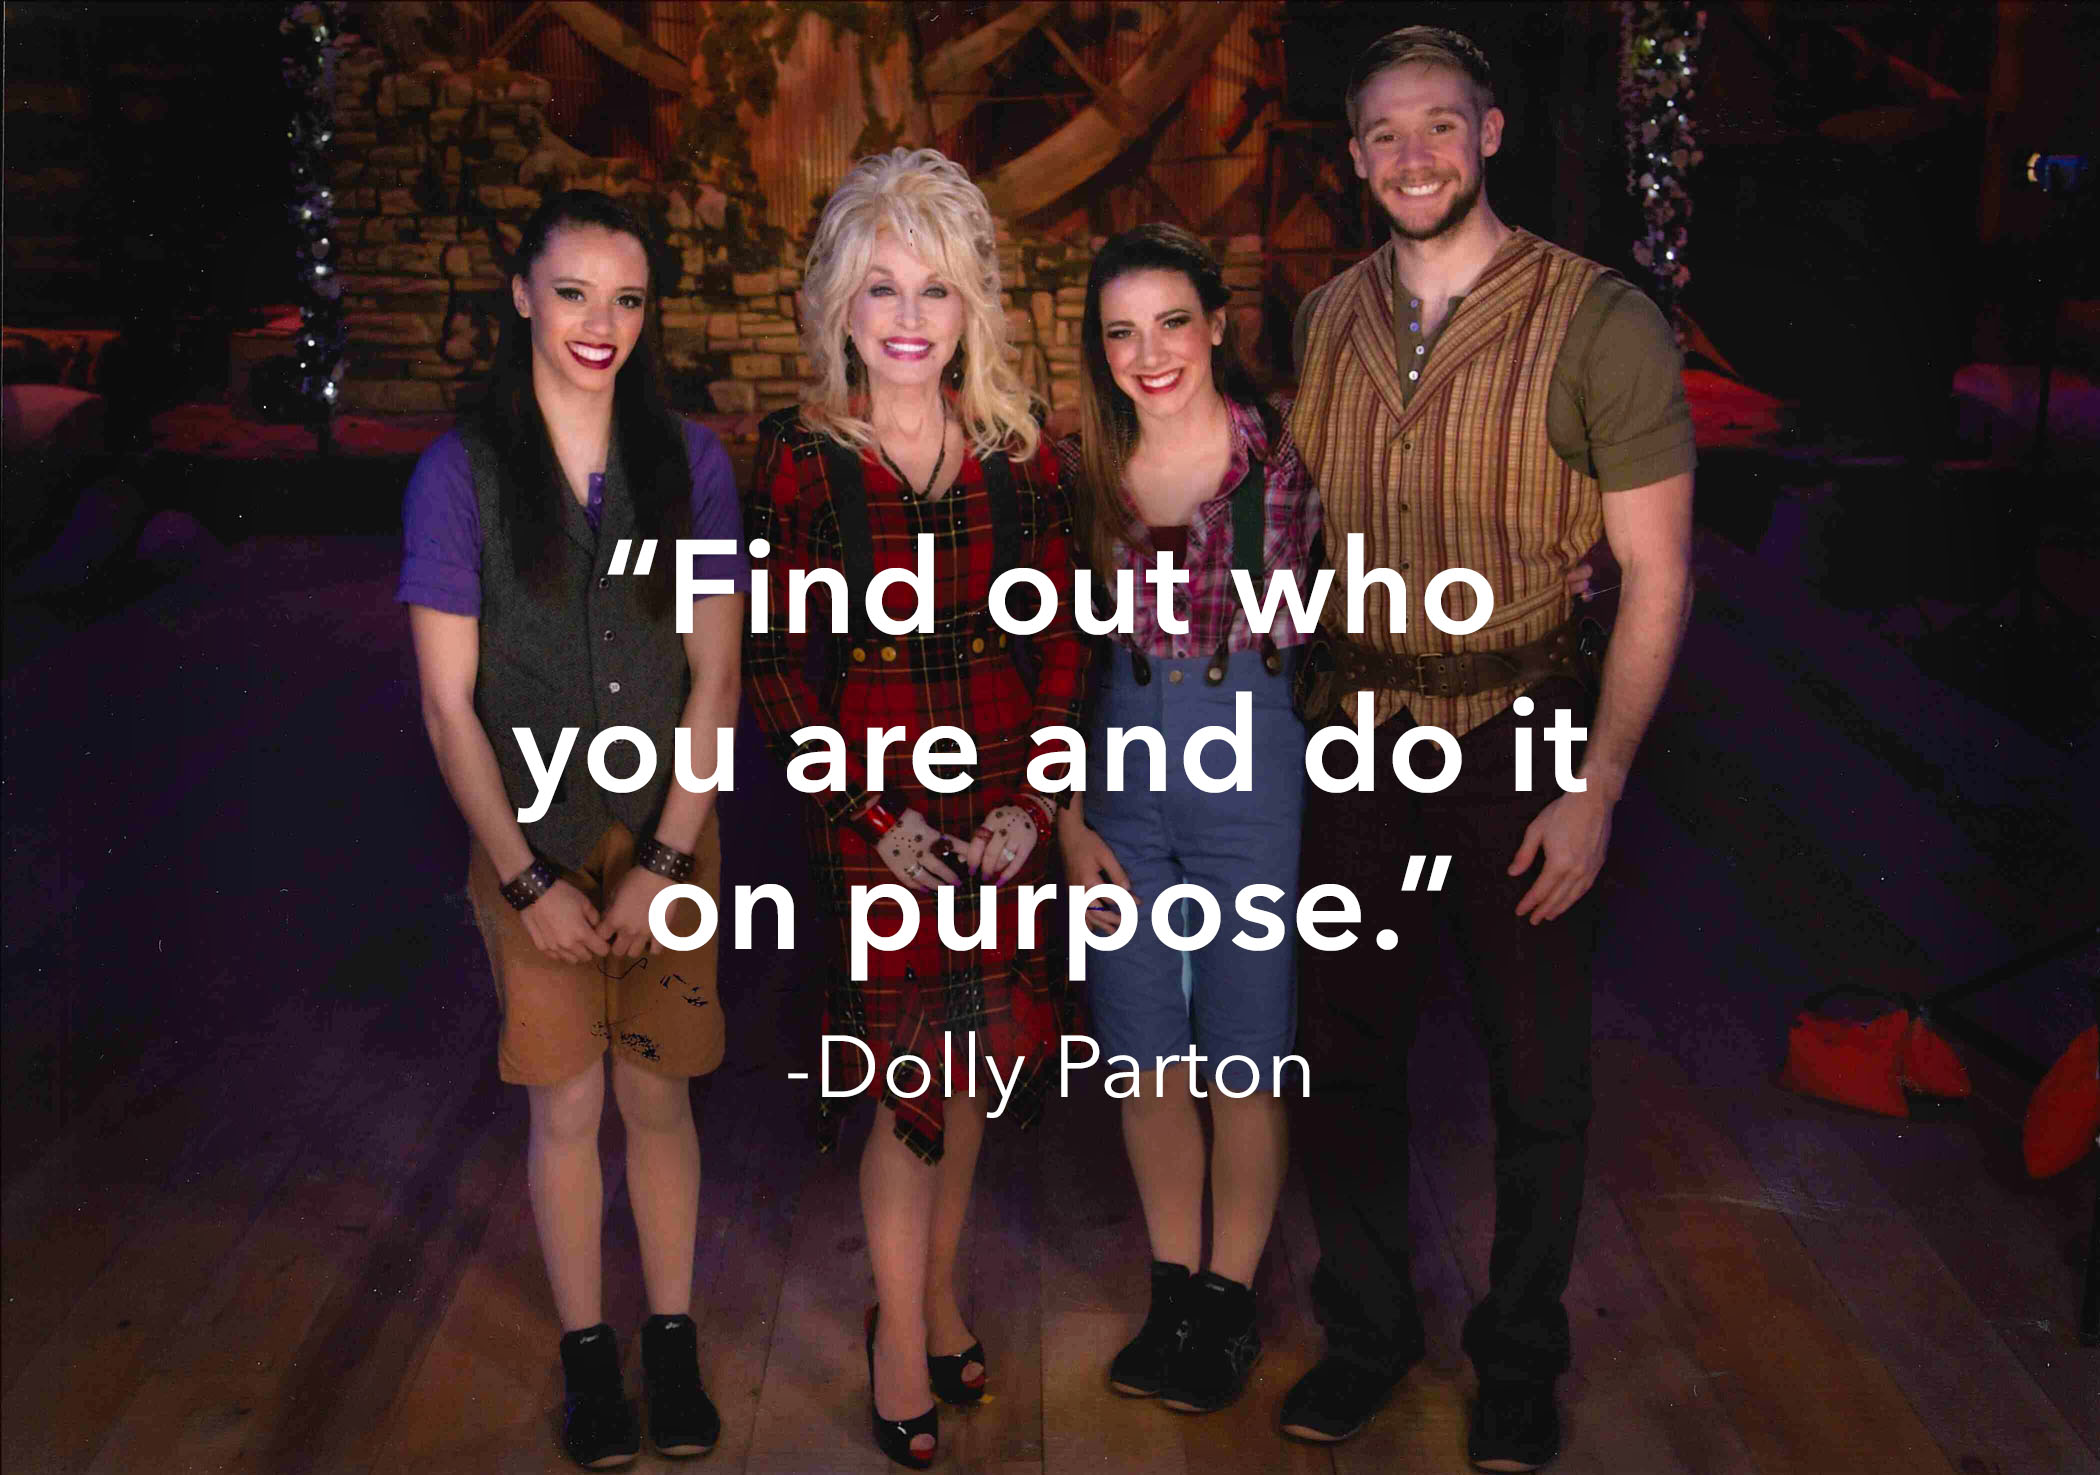 Dolly Parton Quote Do's and Don'ts when applying to internships